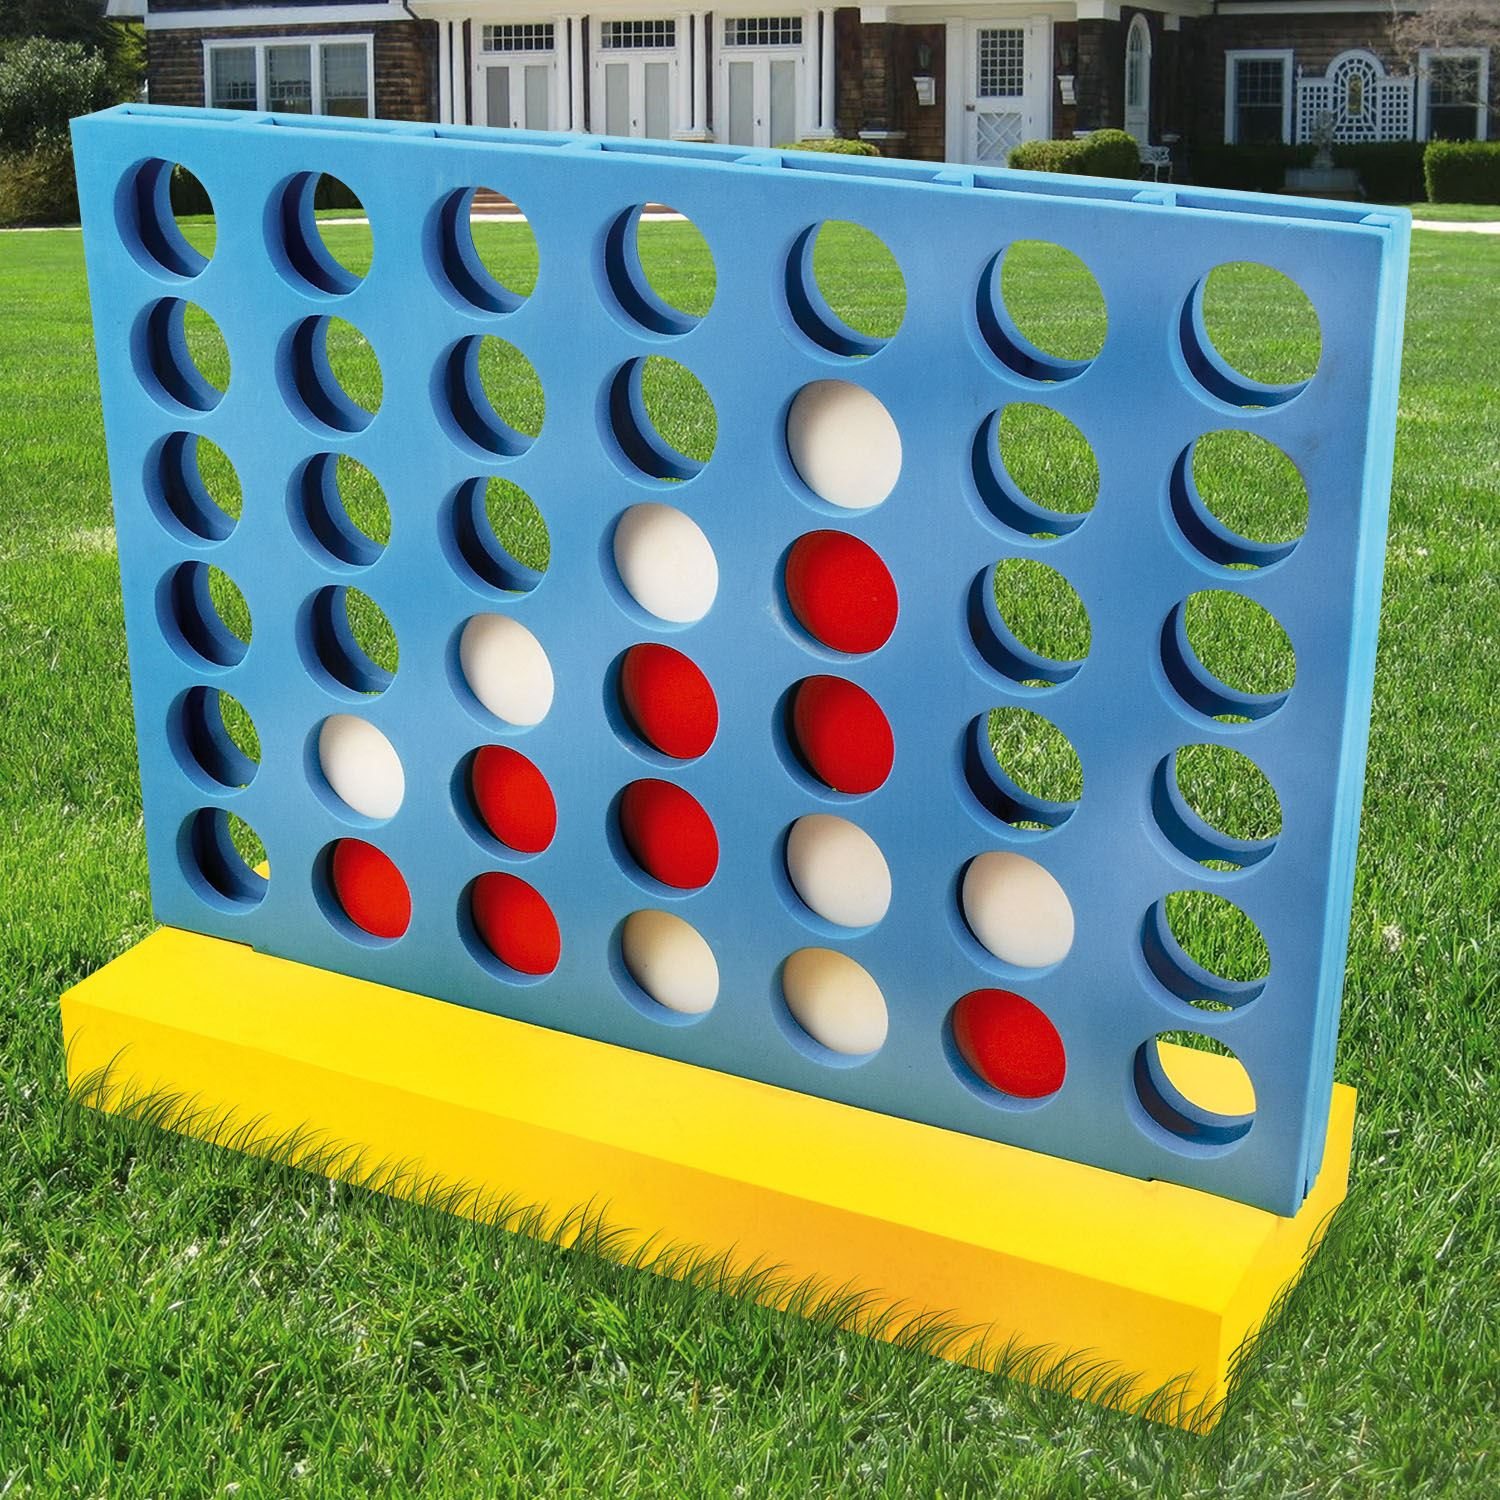 GIANT CONNECT 4 IN A ROW ADULTS KIDS FAMILY FUN PARTY GIFT